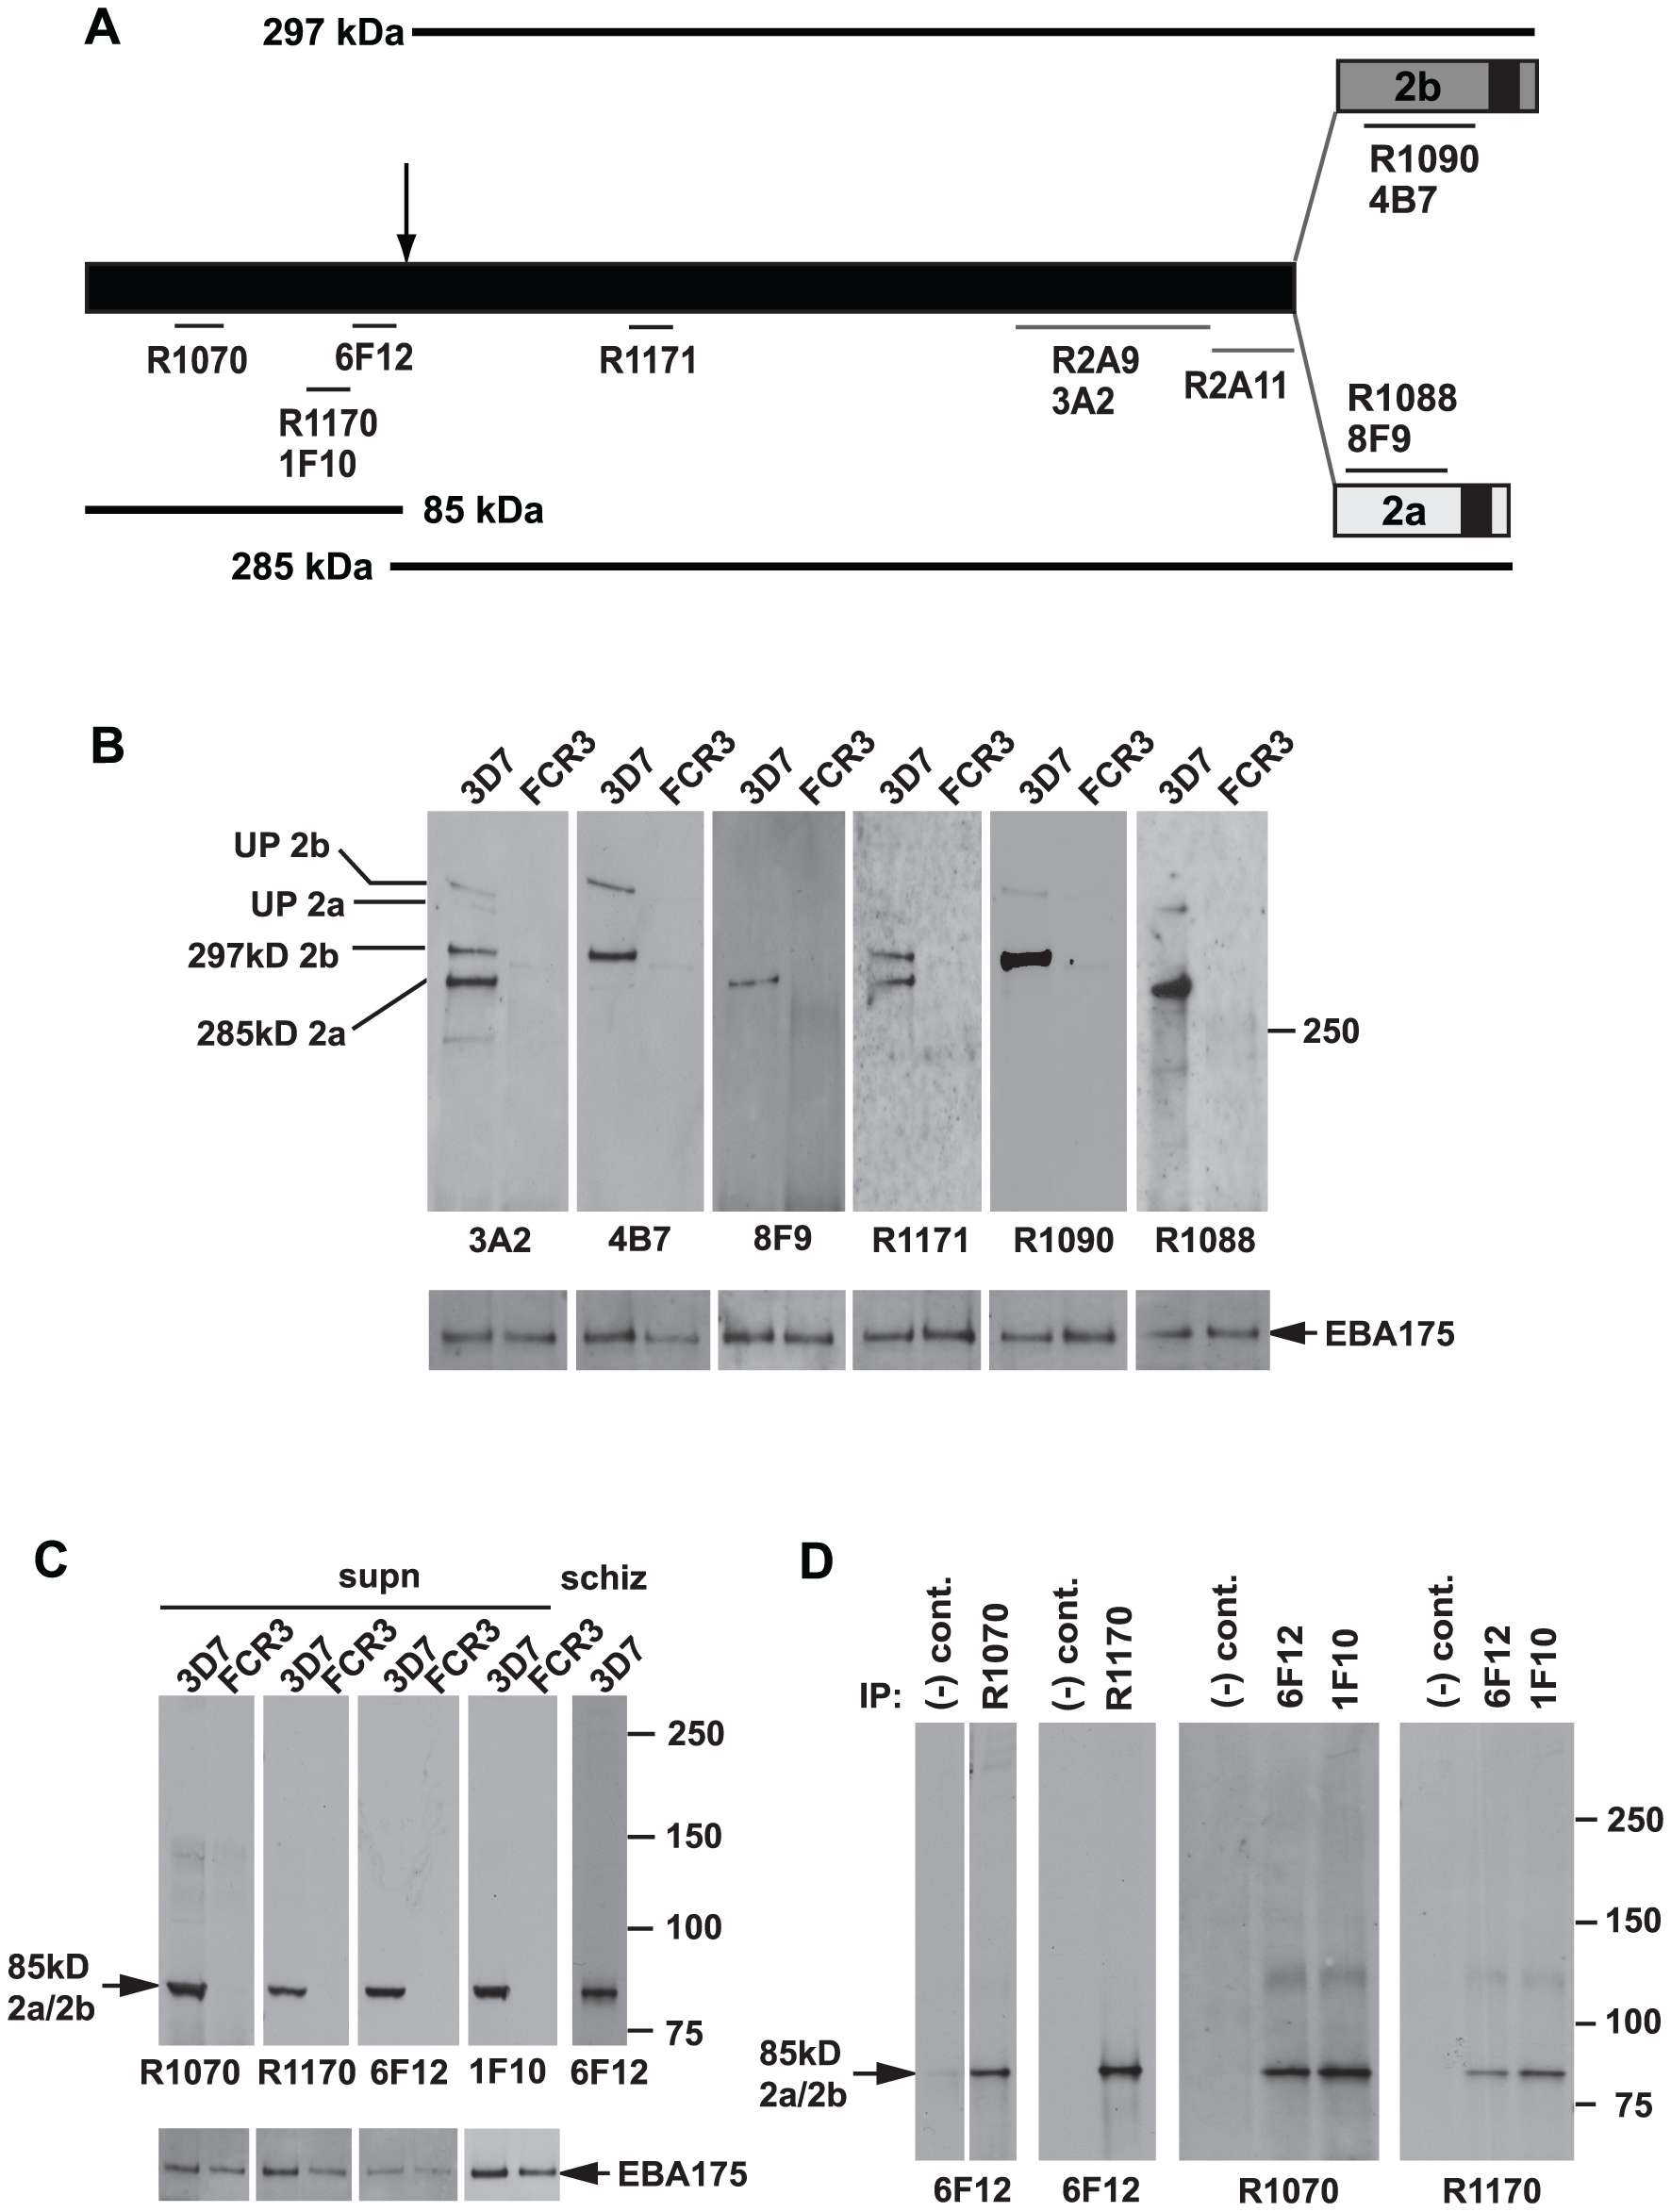 Both the PfRh2a and PfRh2b proteins are processed to release an 85 kDa product into culture supernatants.